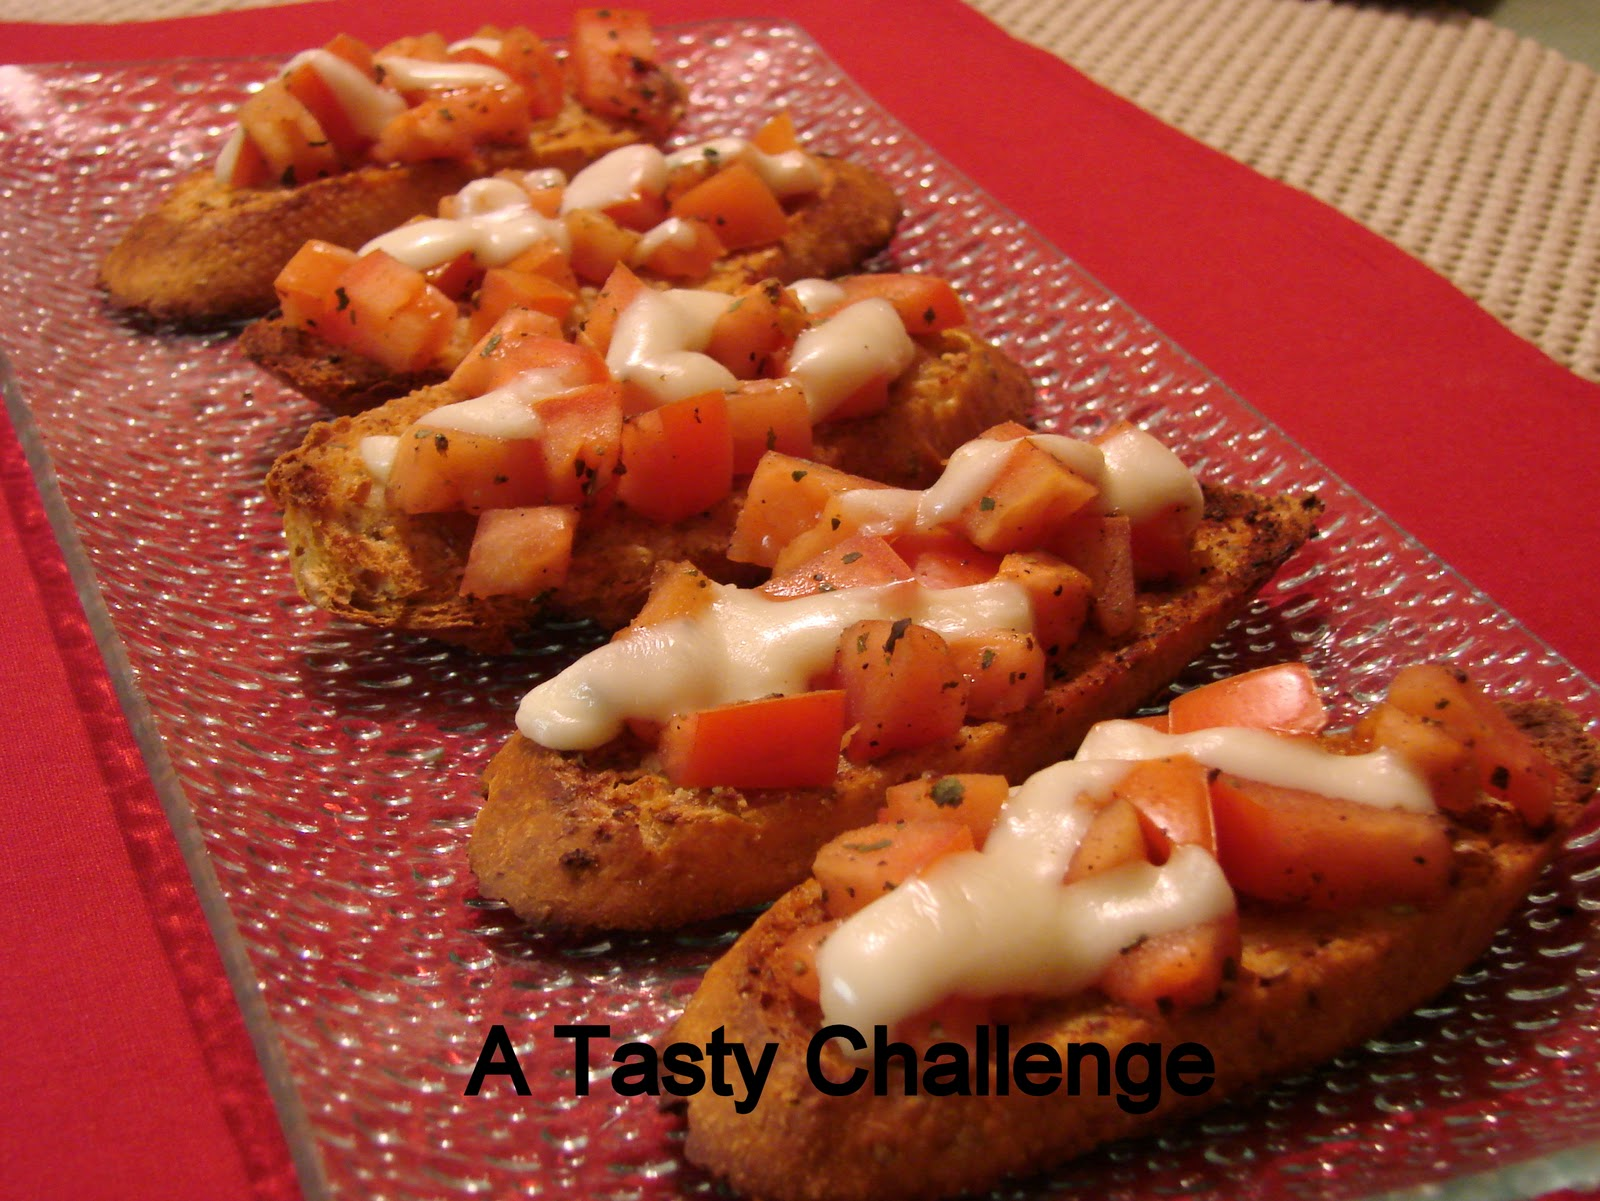 Tasty Challenge.....: Roasted Garlic Tomato Bruschetta